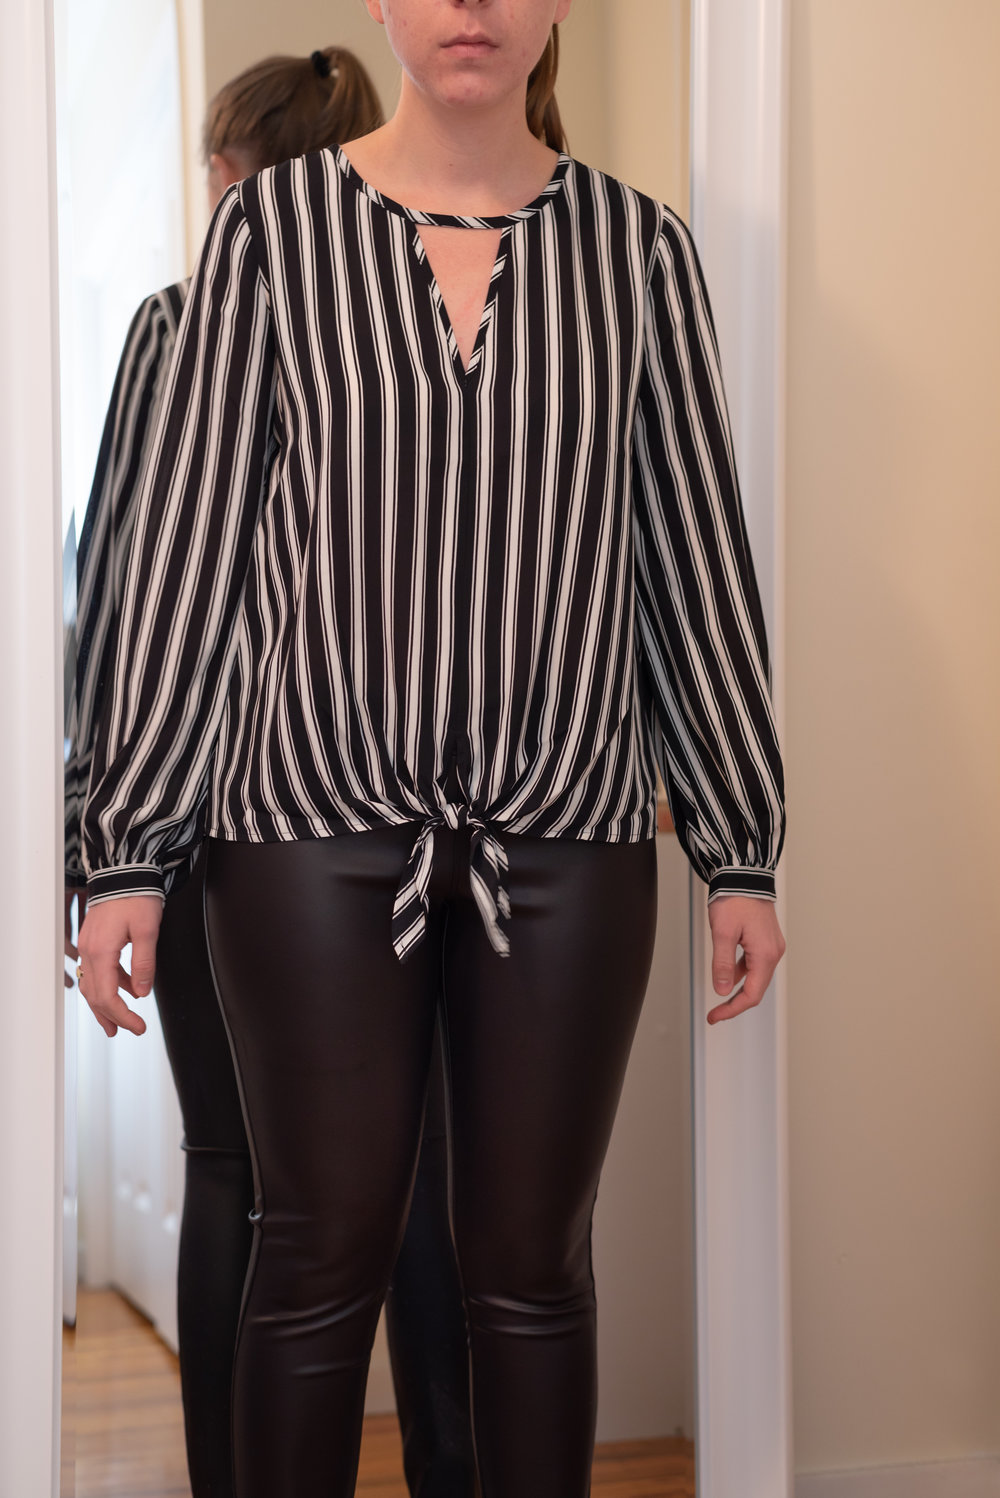 Express Petite Keyhole Tie Front Striped Blouse - Size S